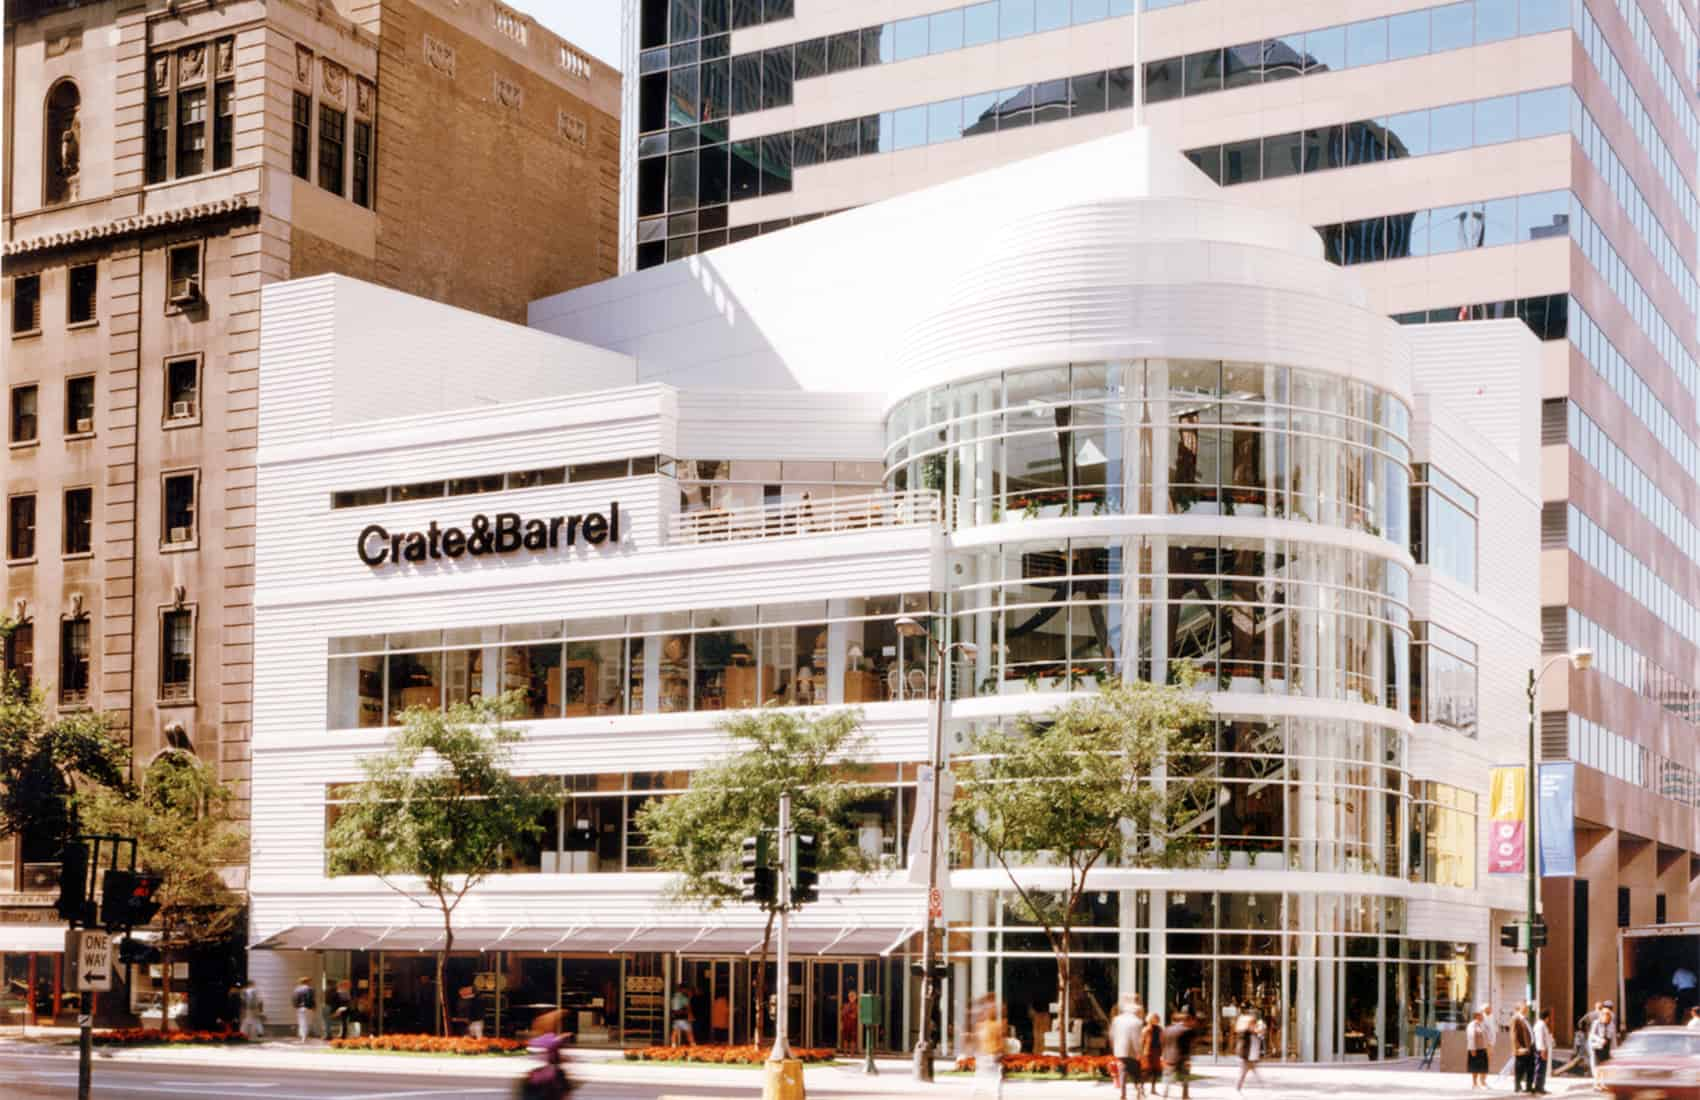 Crate & Barrel store in Chicago Illinois.